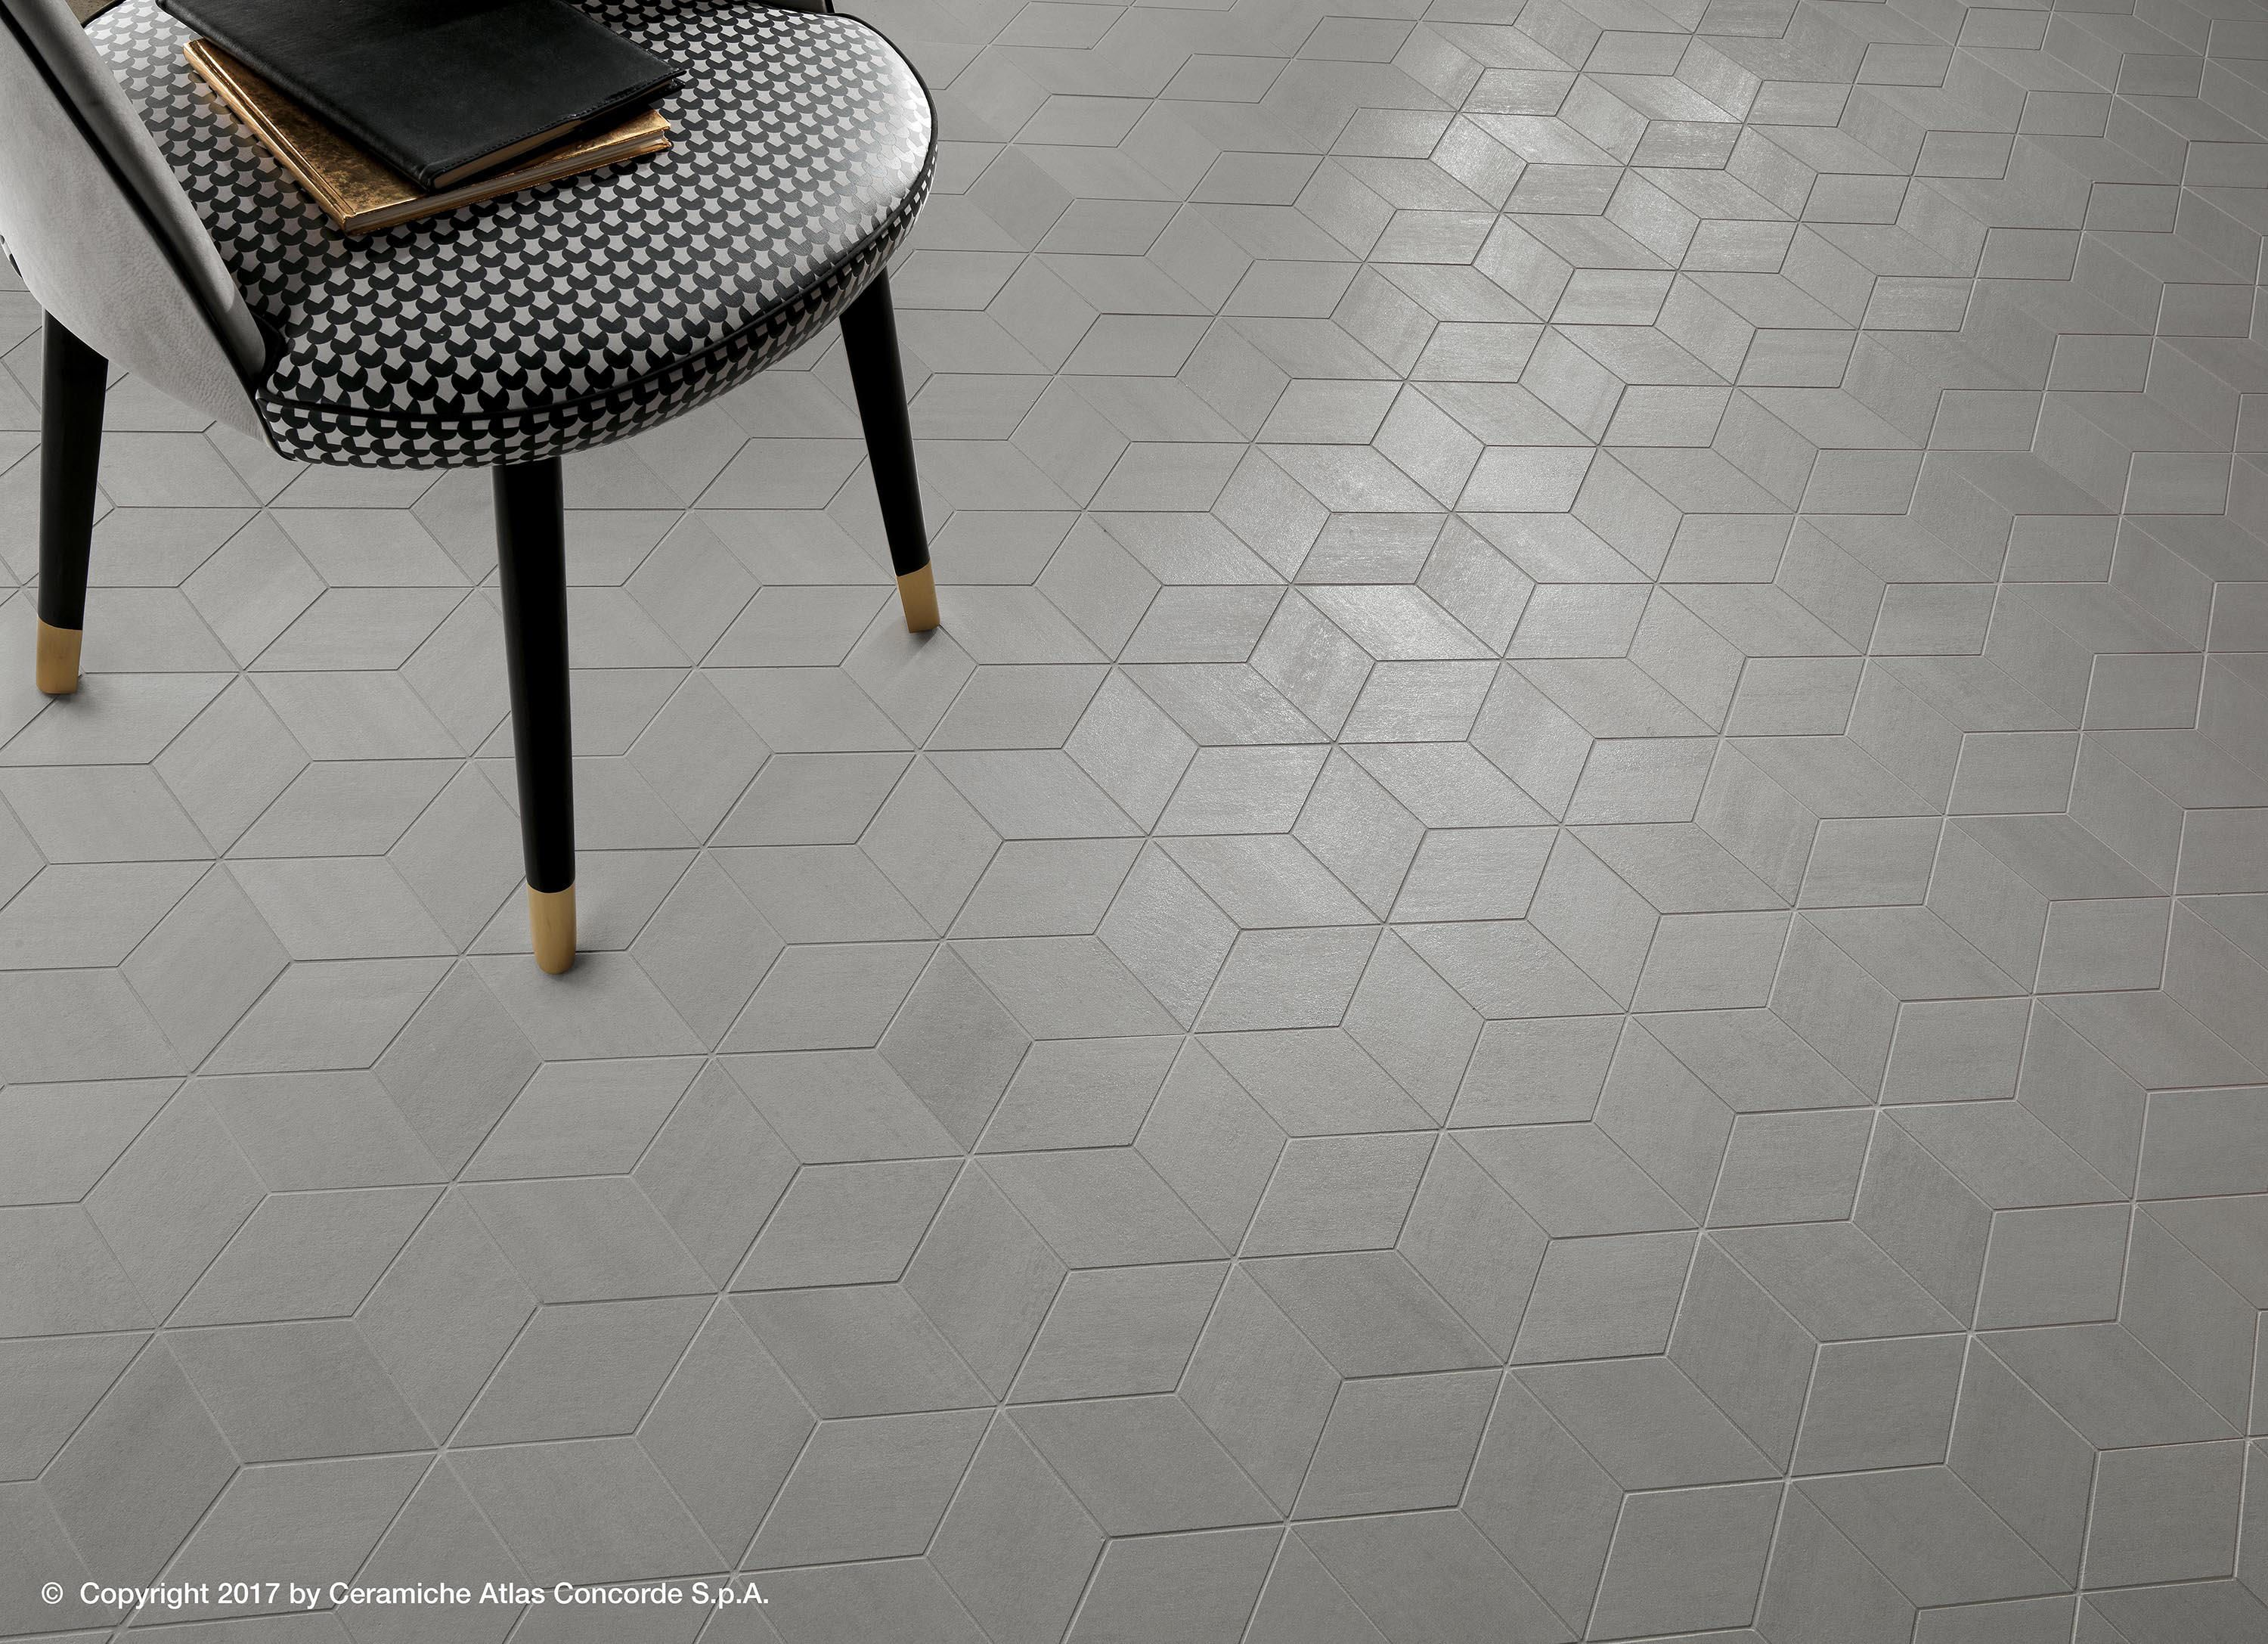 Mek Medium Mos Designer Ceramic Tiles From Atlas Concorde All Information High Resolution Images Cads Geometric Floor Geometric Tiles Mosaic Flooring